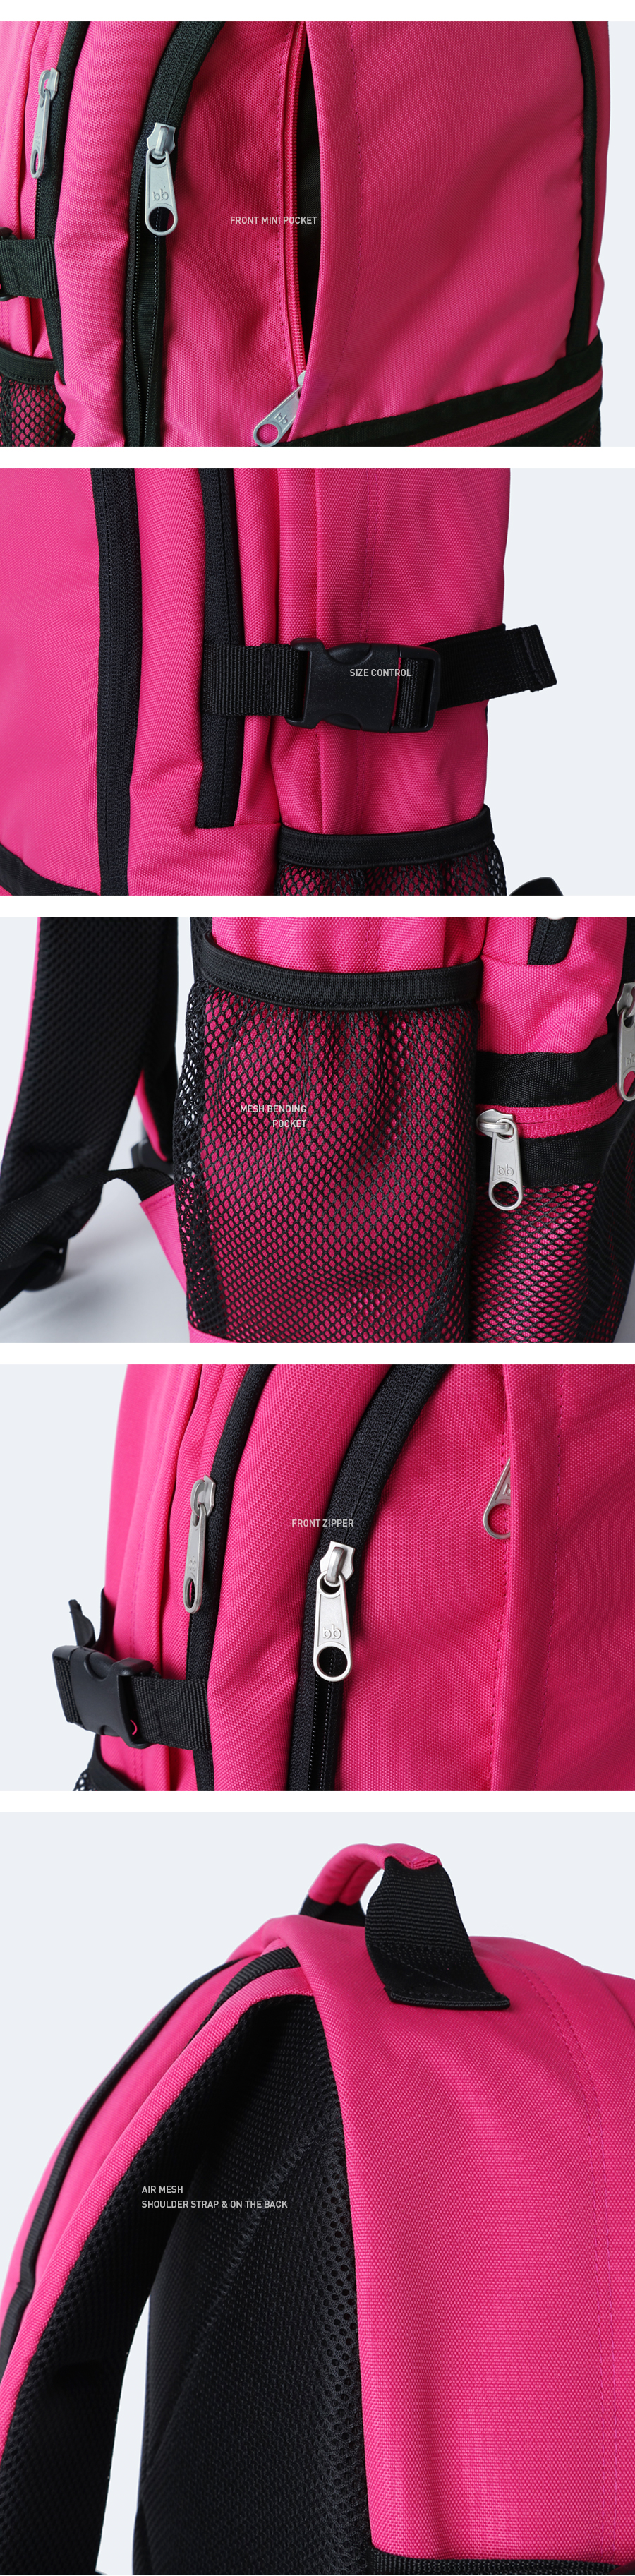 [키홀더 포함] Bubilian 1225 3D backpack_[HOT PINK]